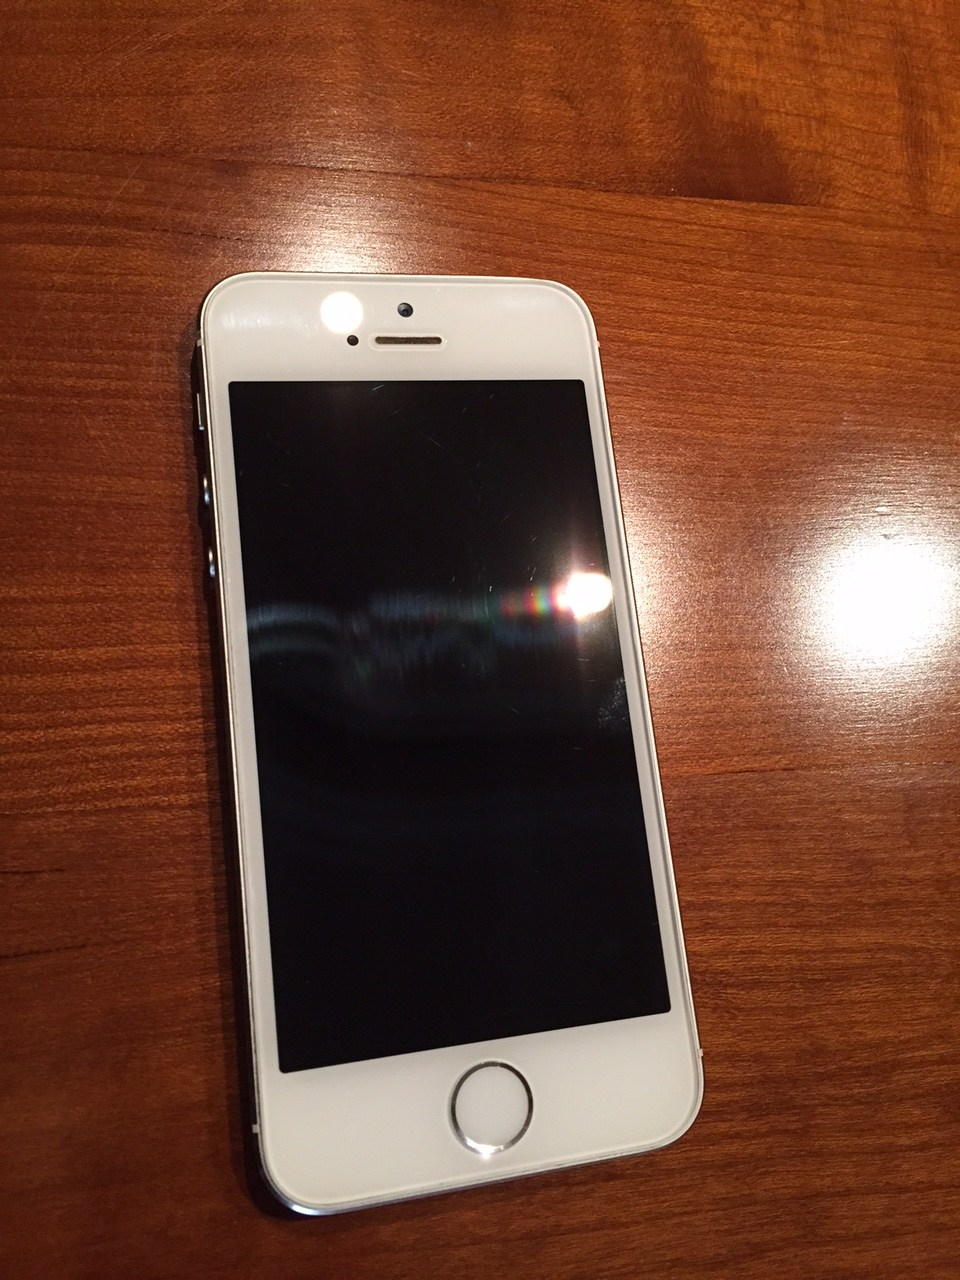 Comprar Iphone 5 32gb Libre Venta Iphone 5s 32gb Blanco Libre En Perfecto Estado Lo